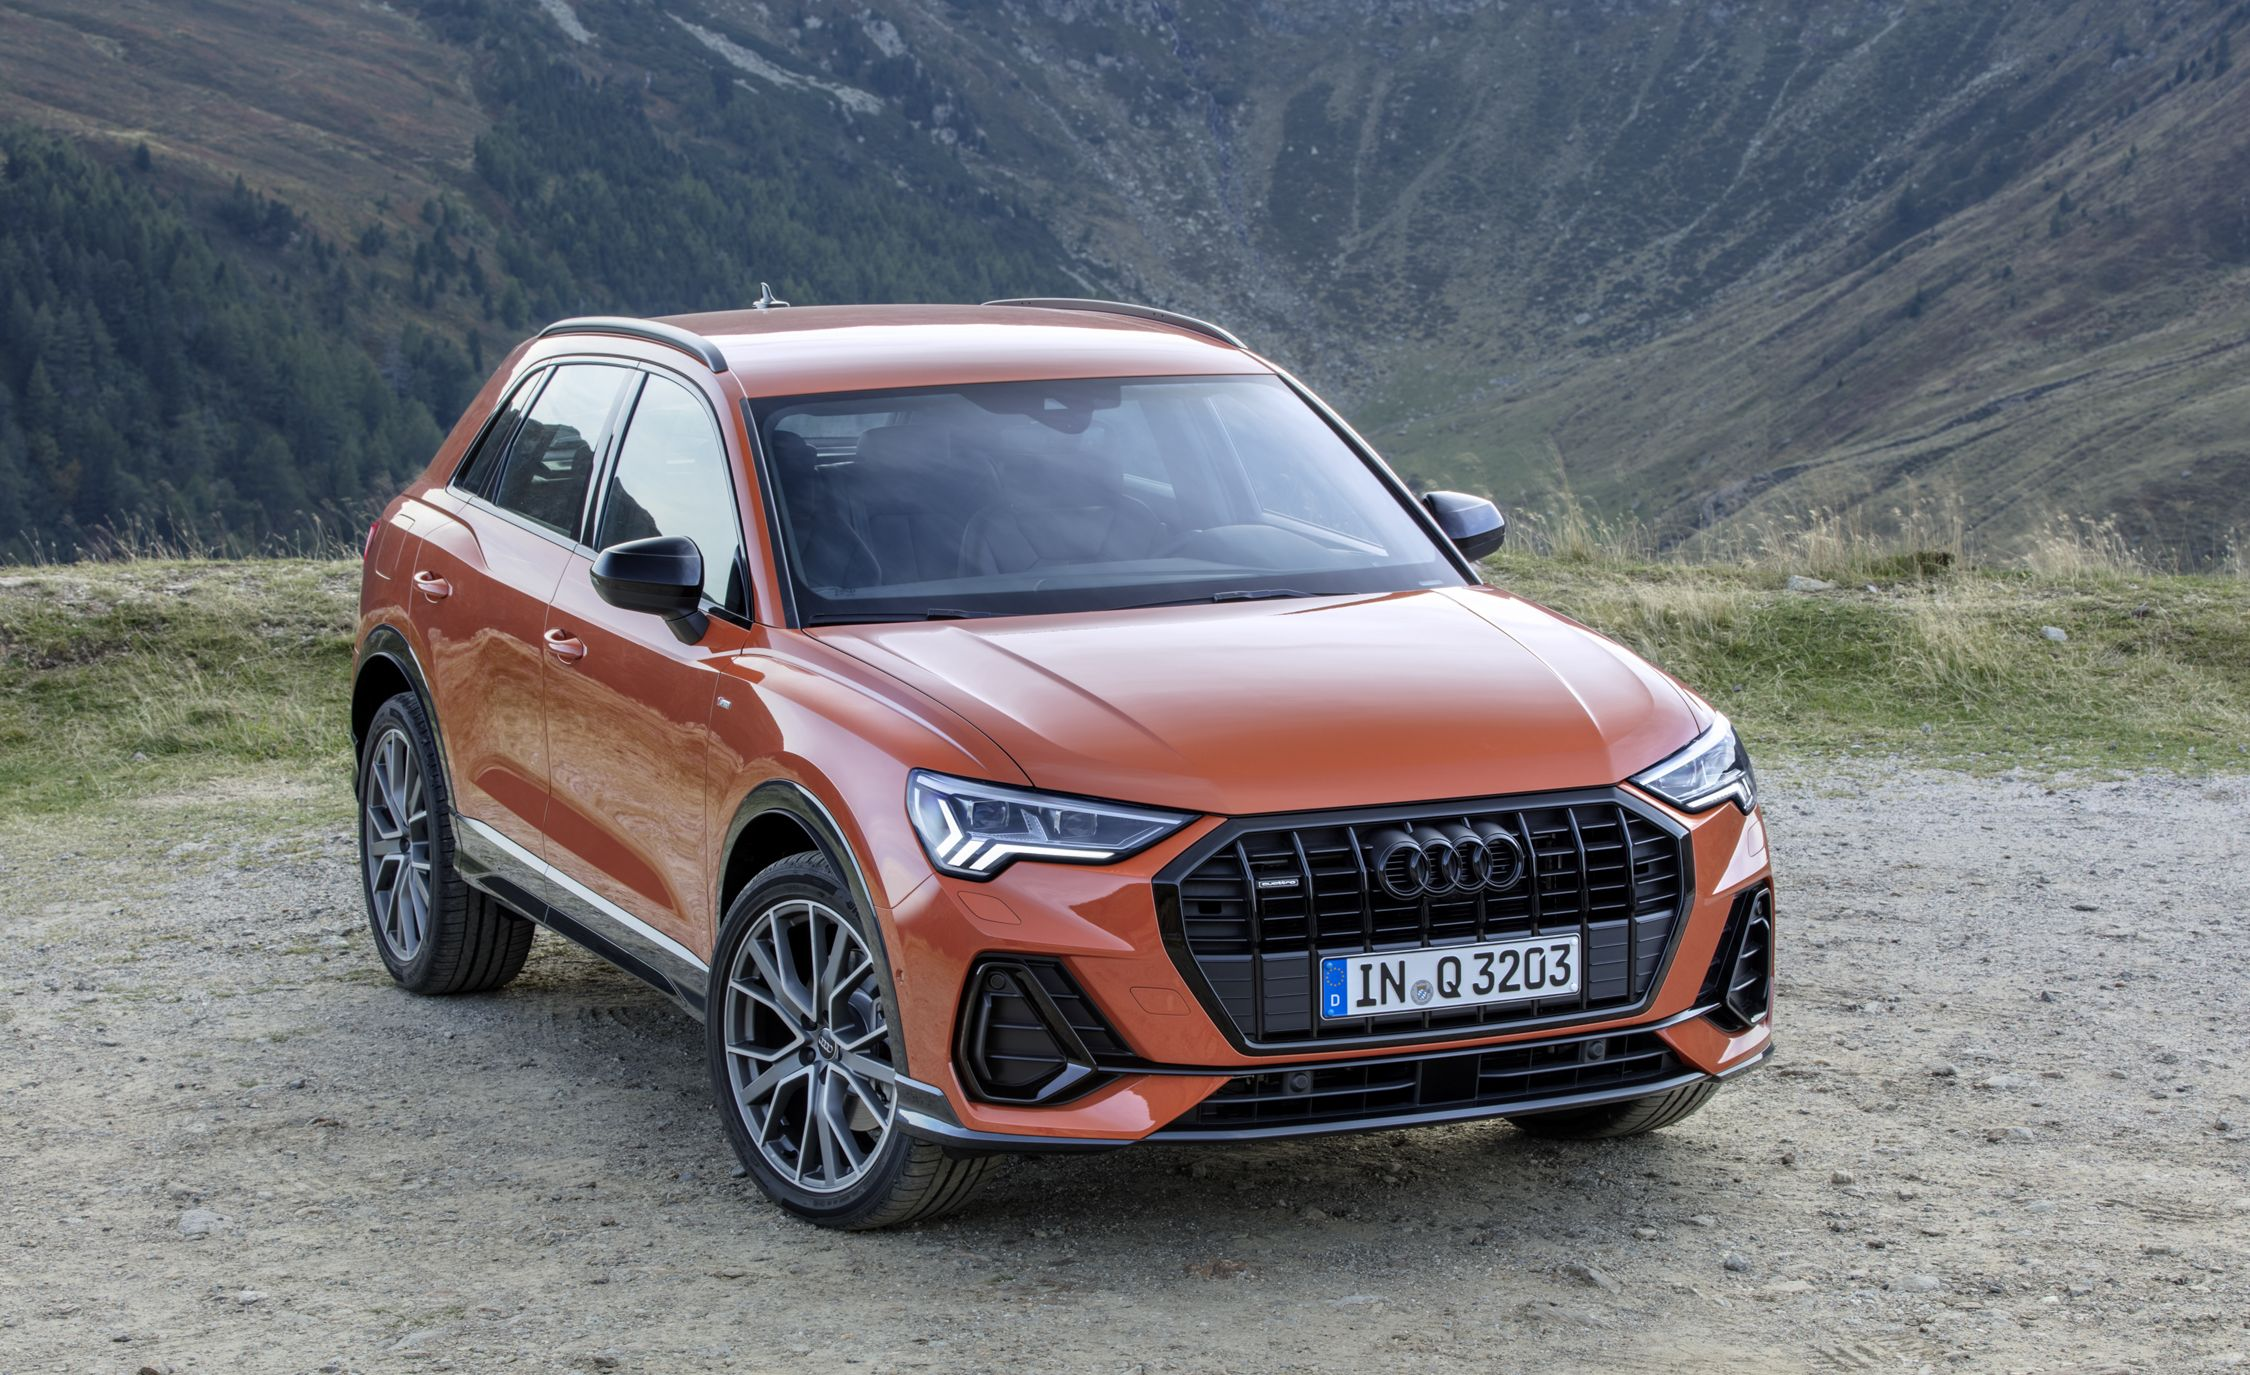 Audi Q3: photos, specifications, car features and reviews of owners 27